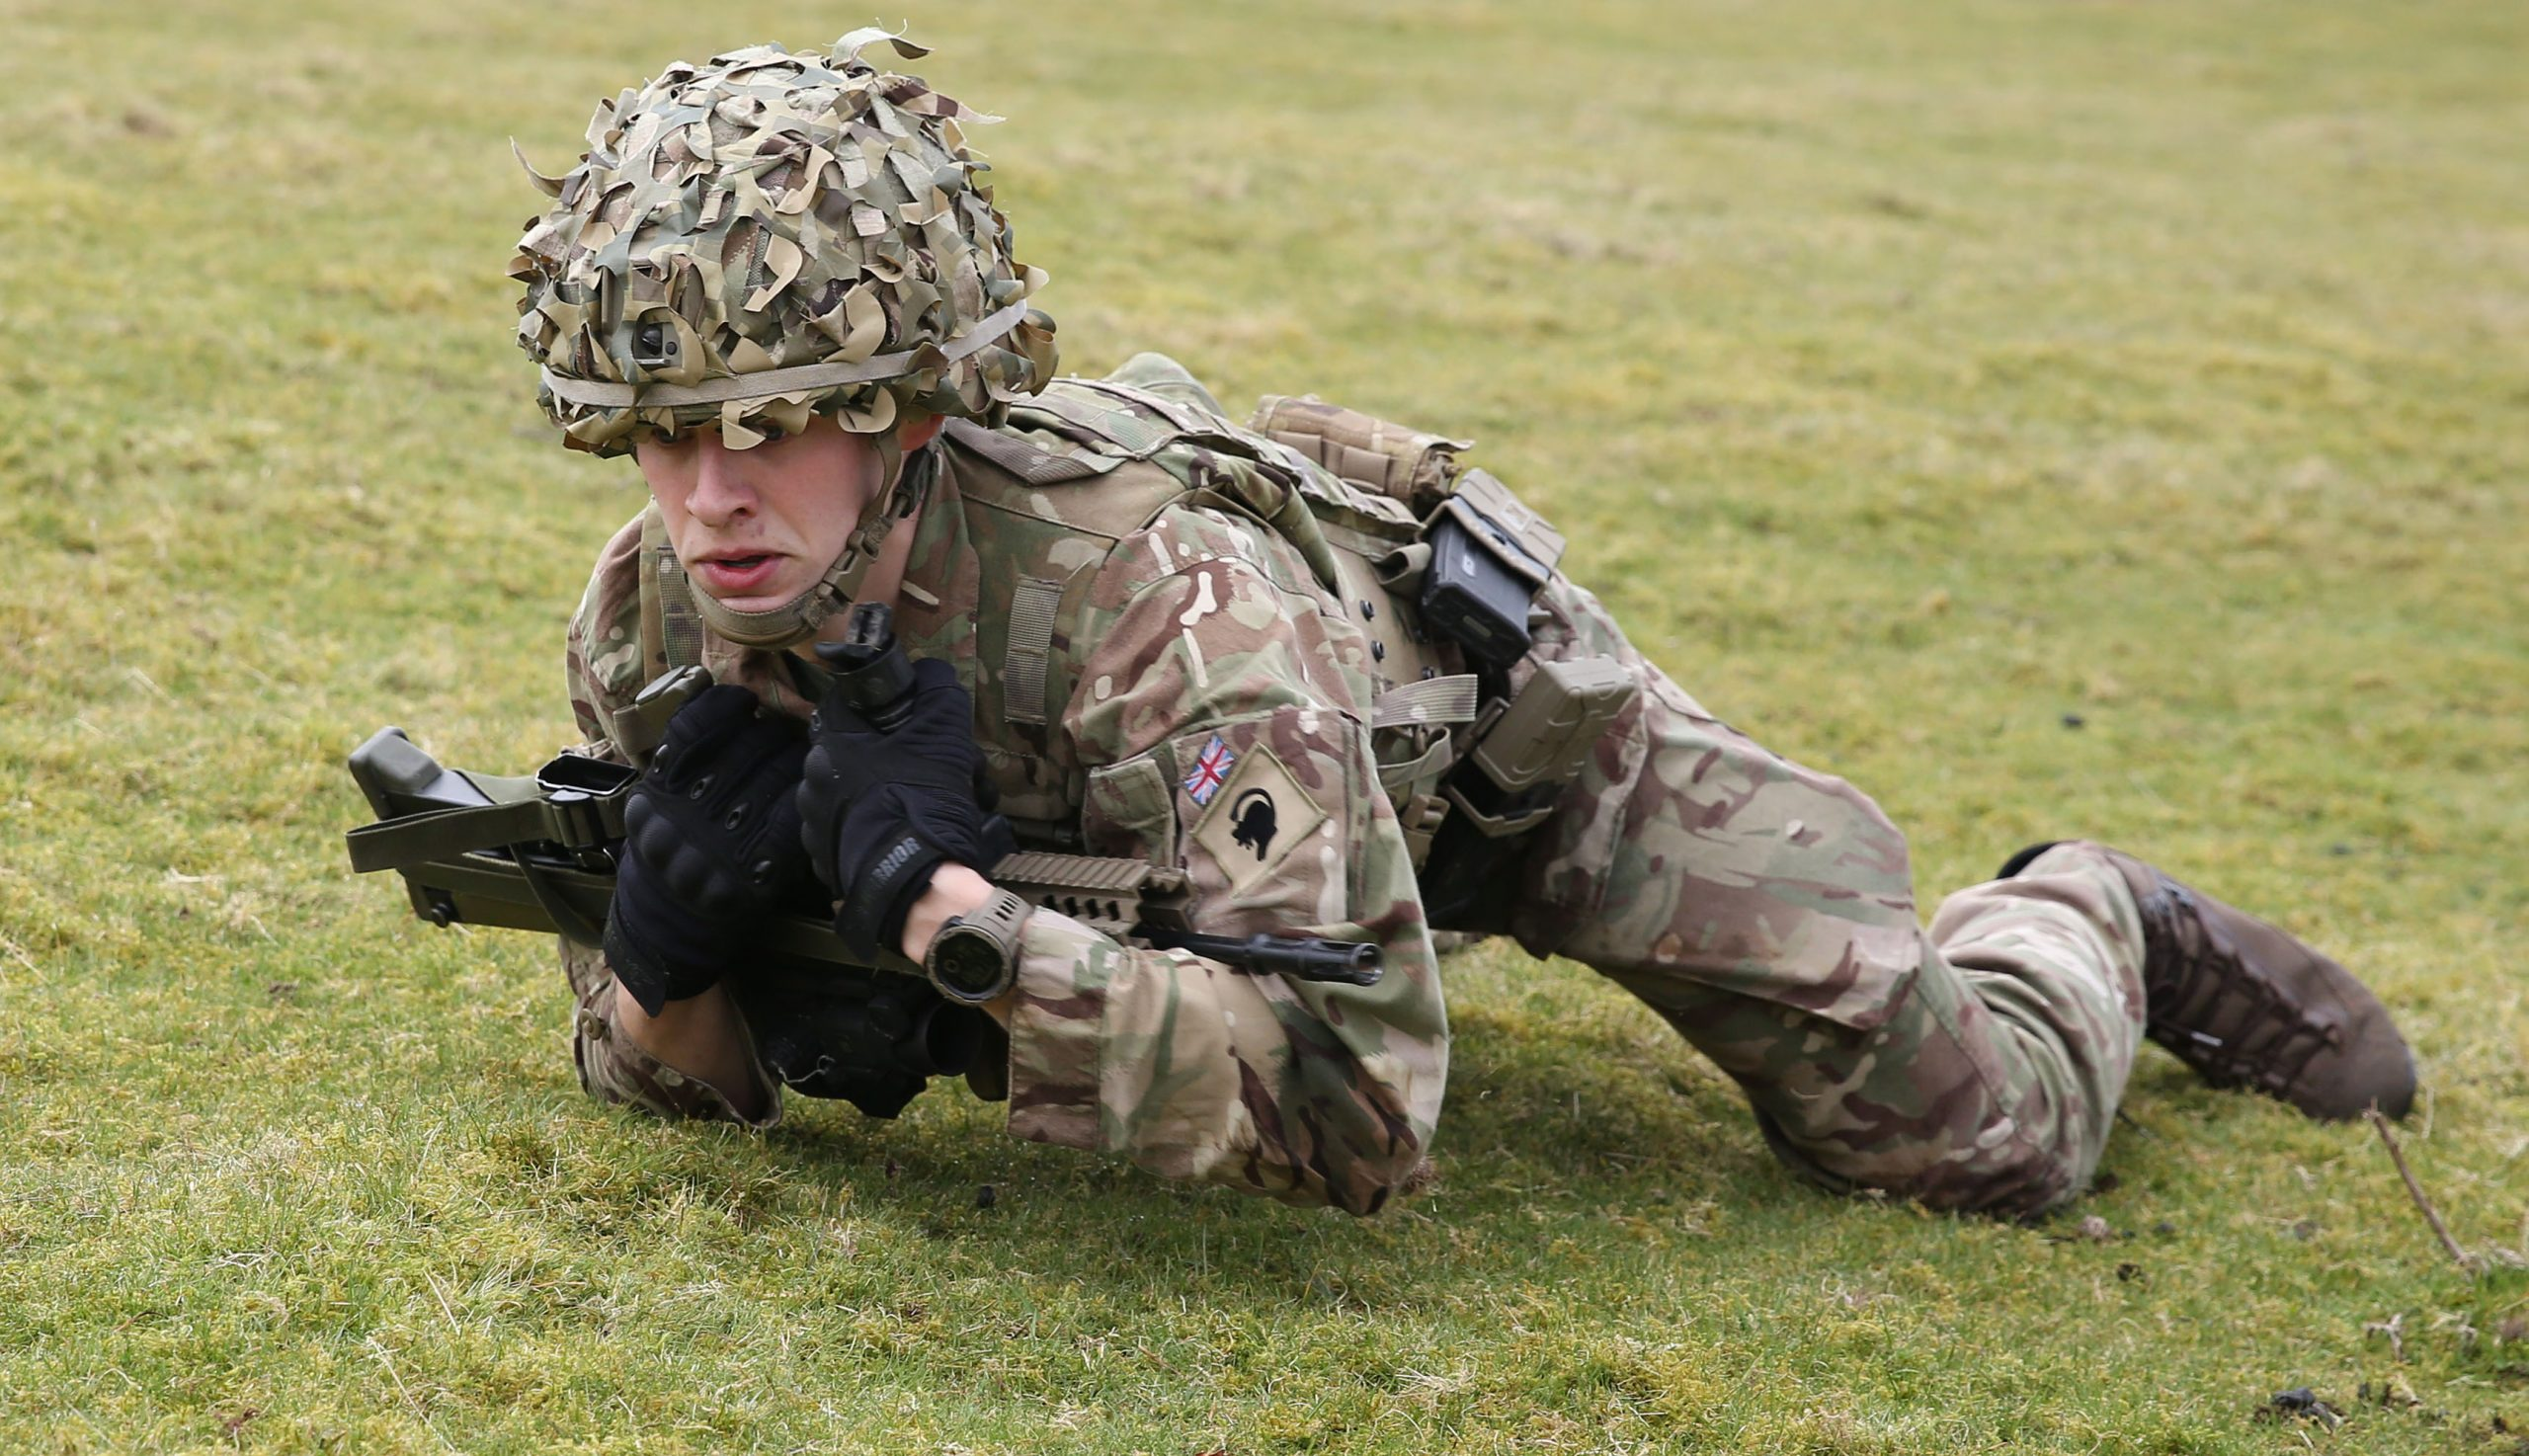 Reservist Tom Bylo practising fire and move